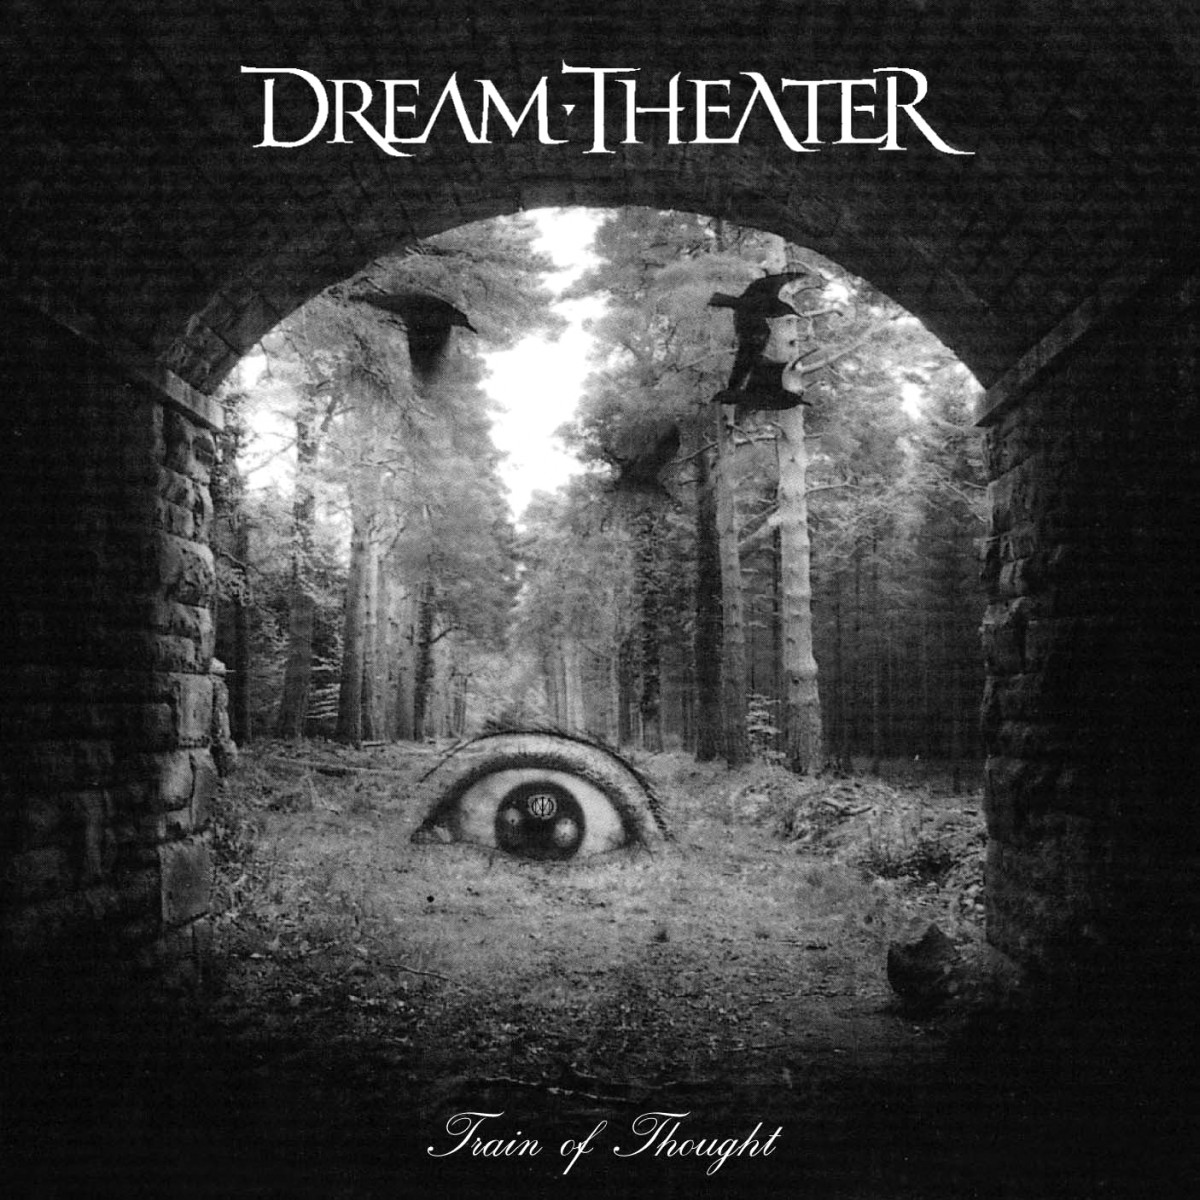 158-dream-theater-train-of-thought.jpg